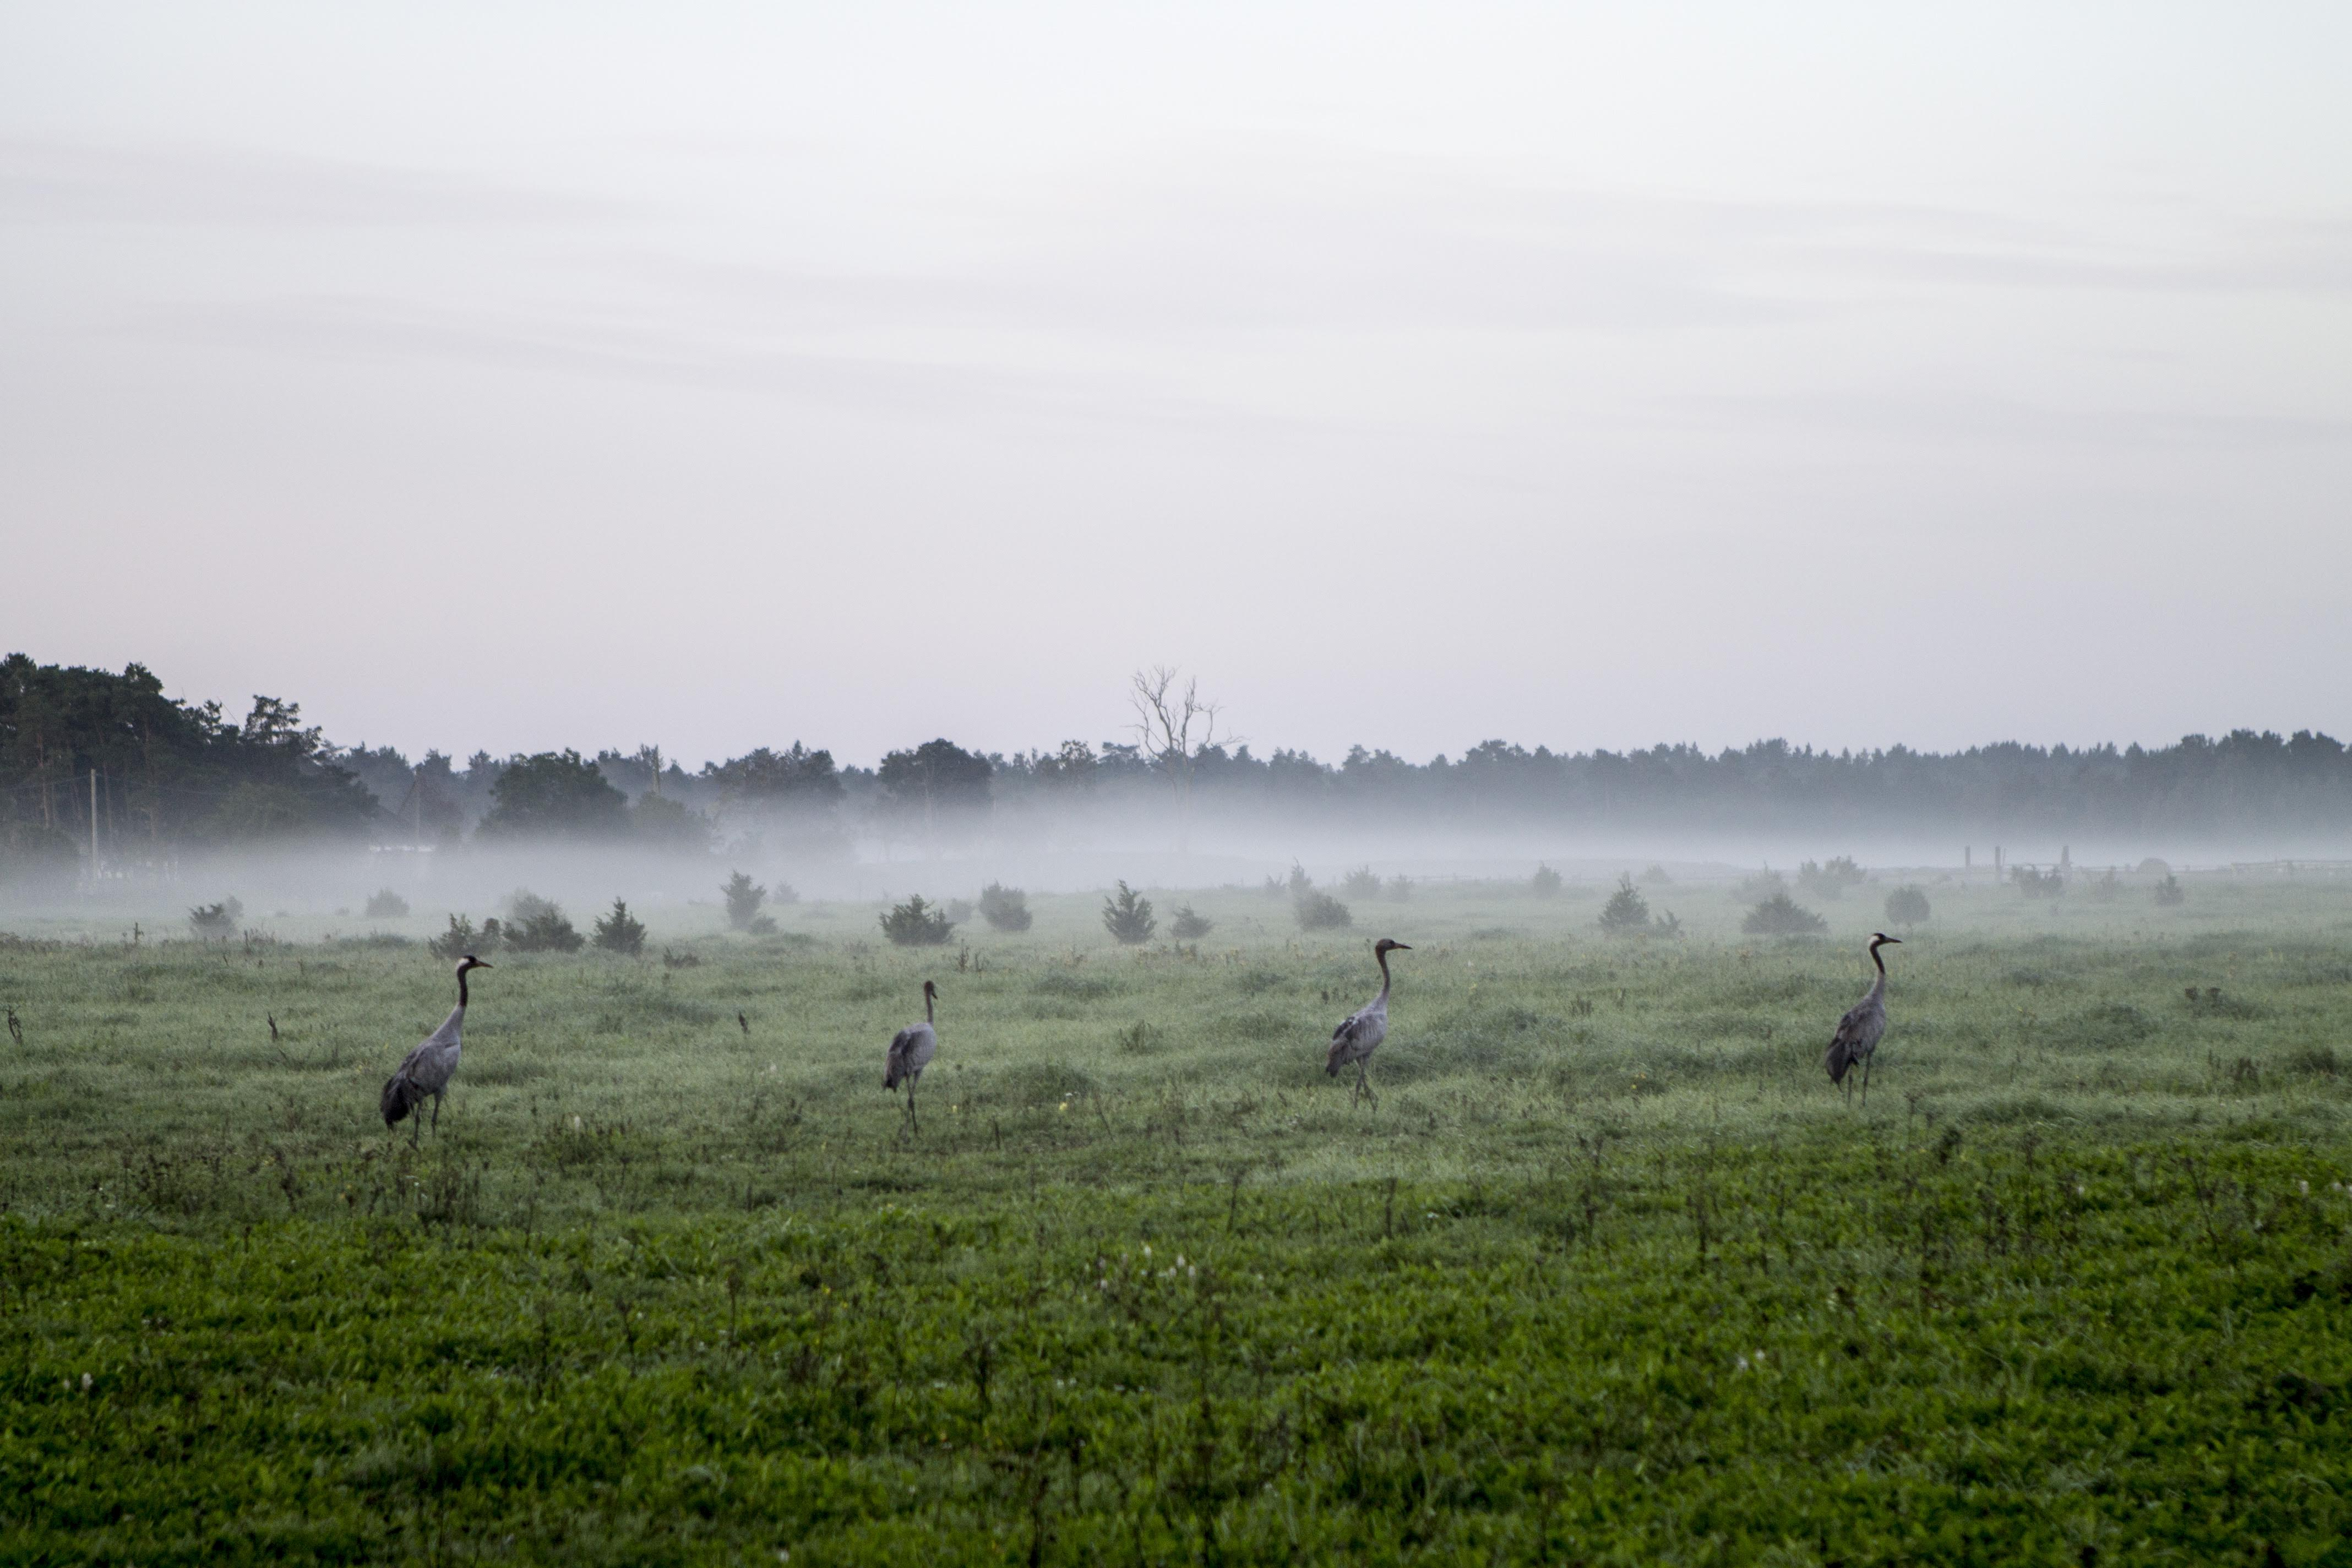 Saaremaa is a pradise for bird watching